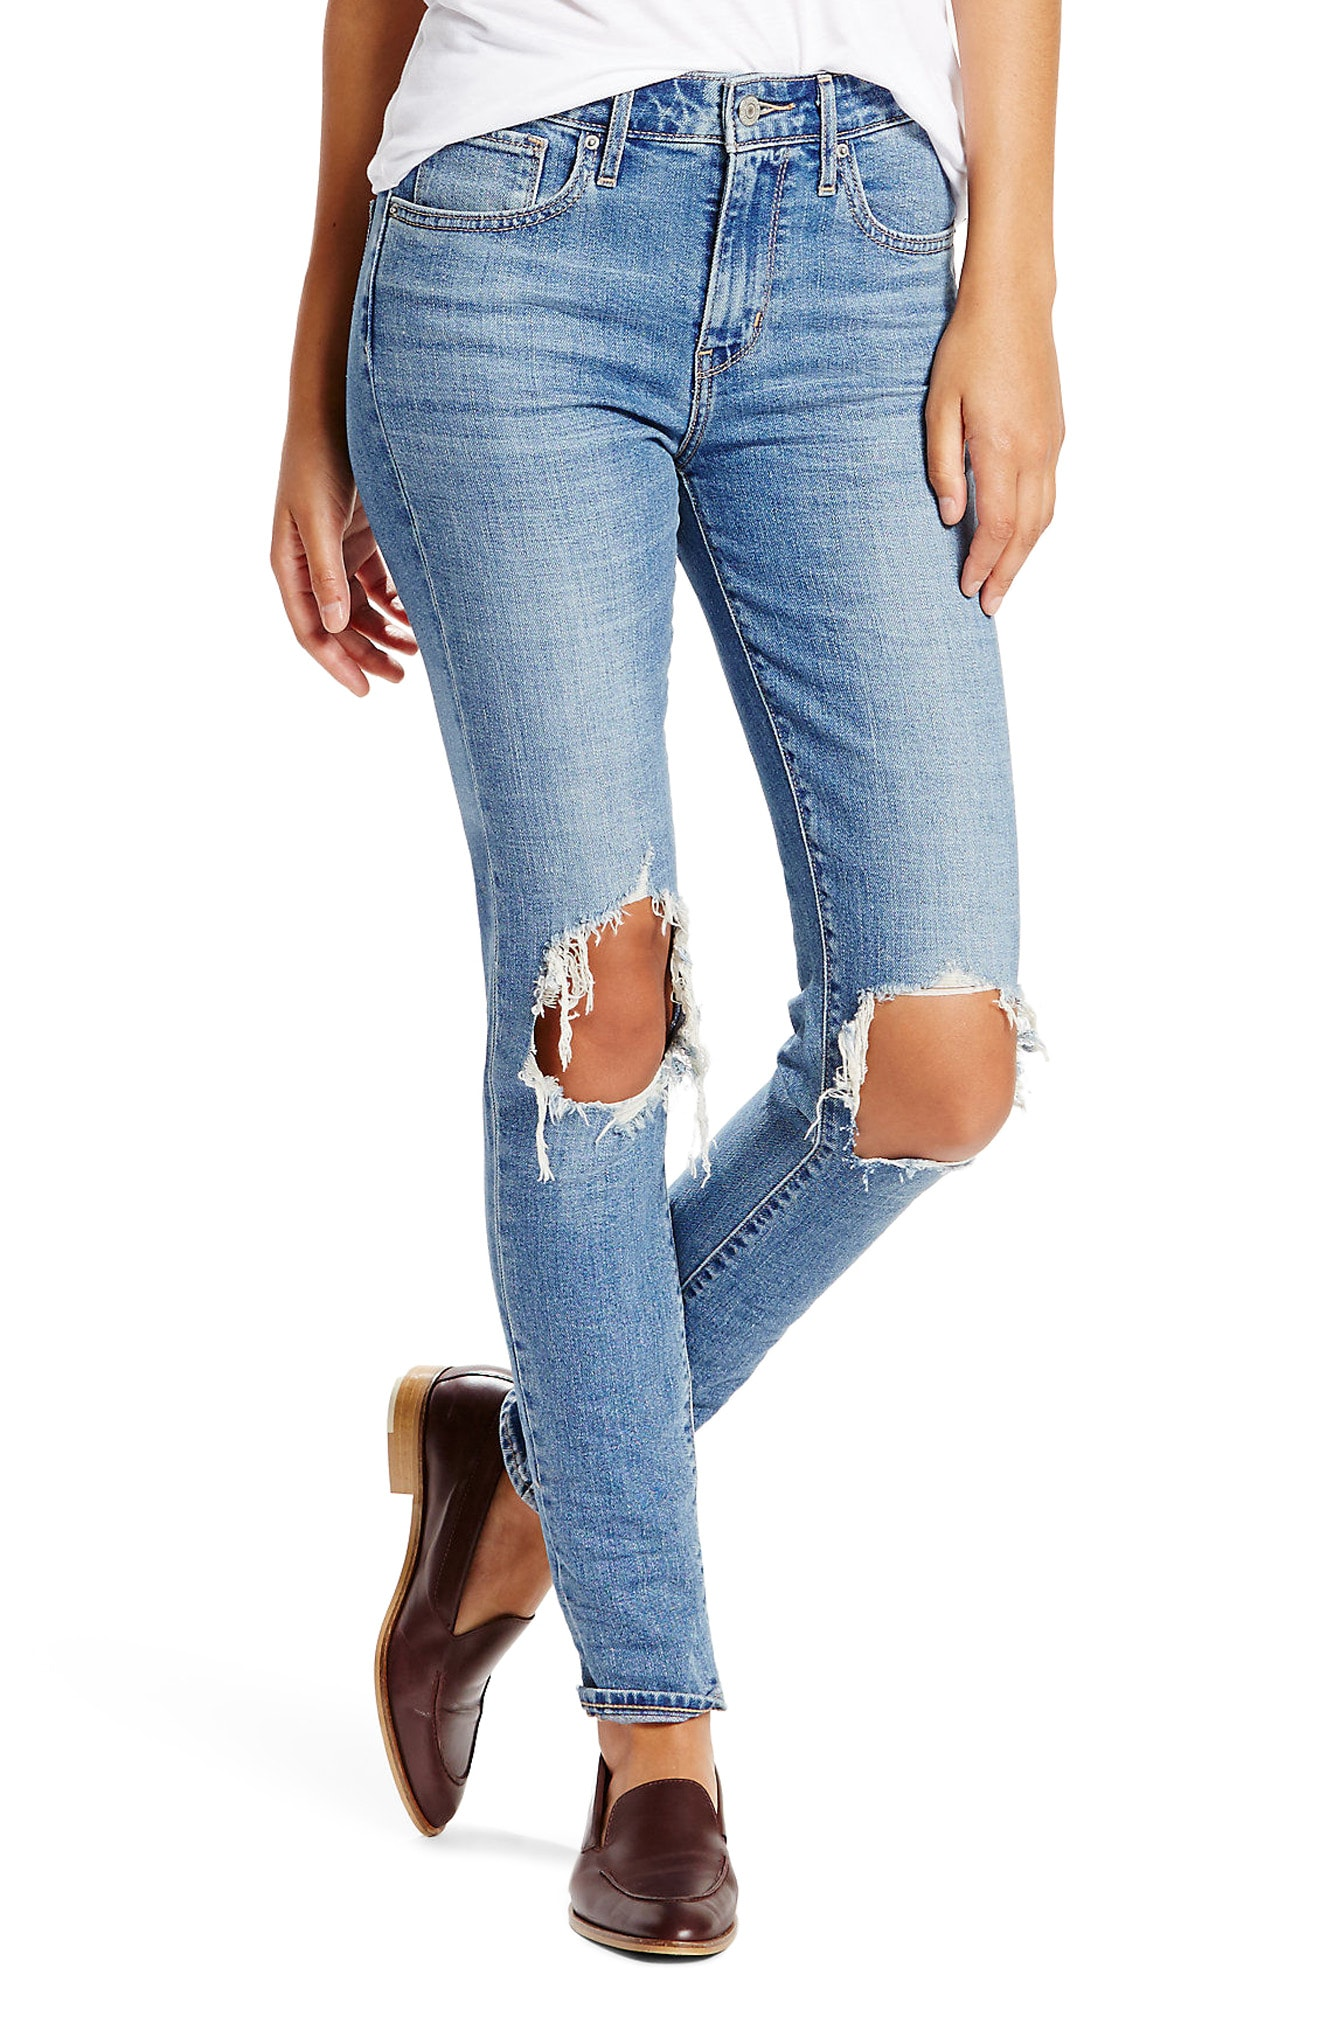 Women's High-Waisted Jeans | Nordstrom